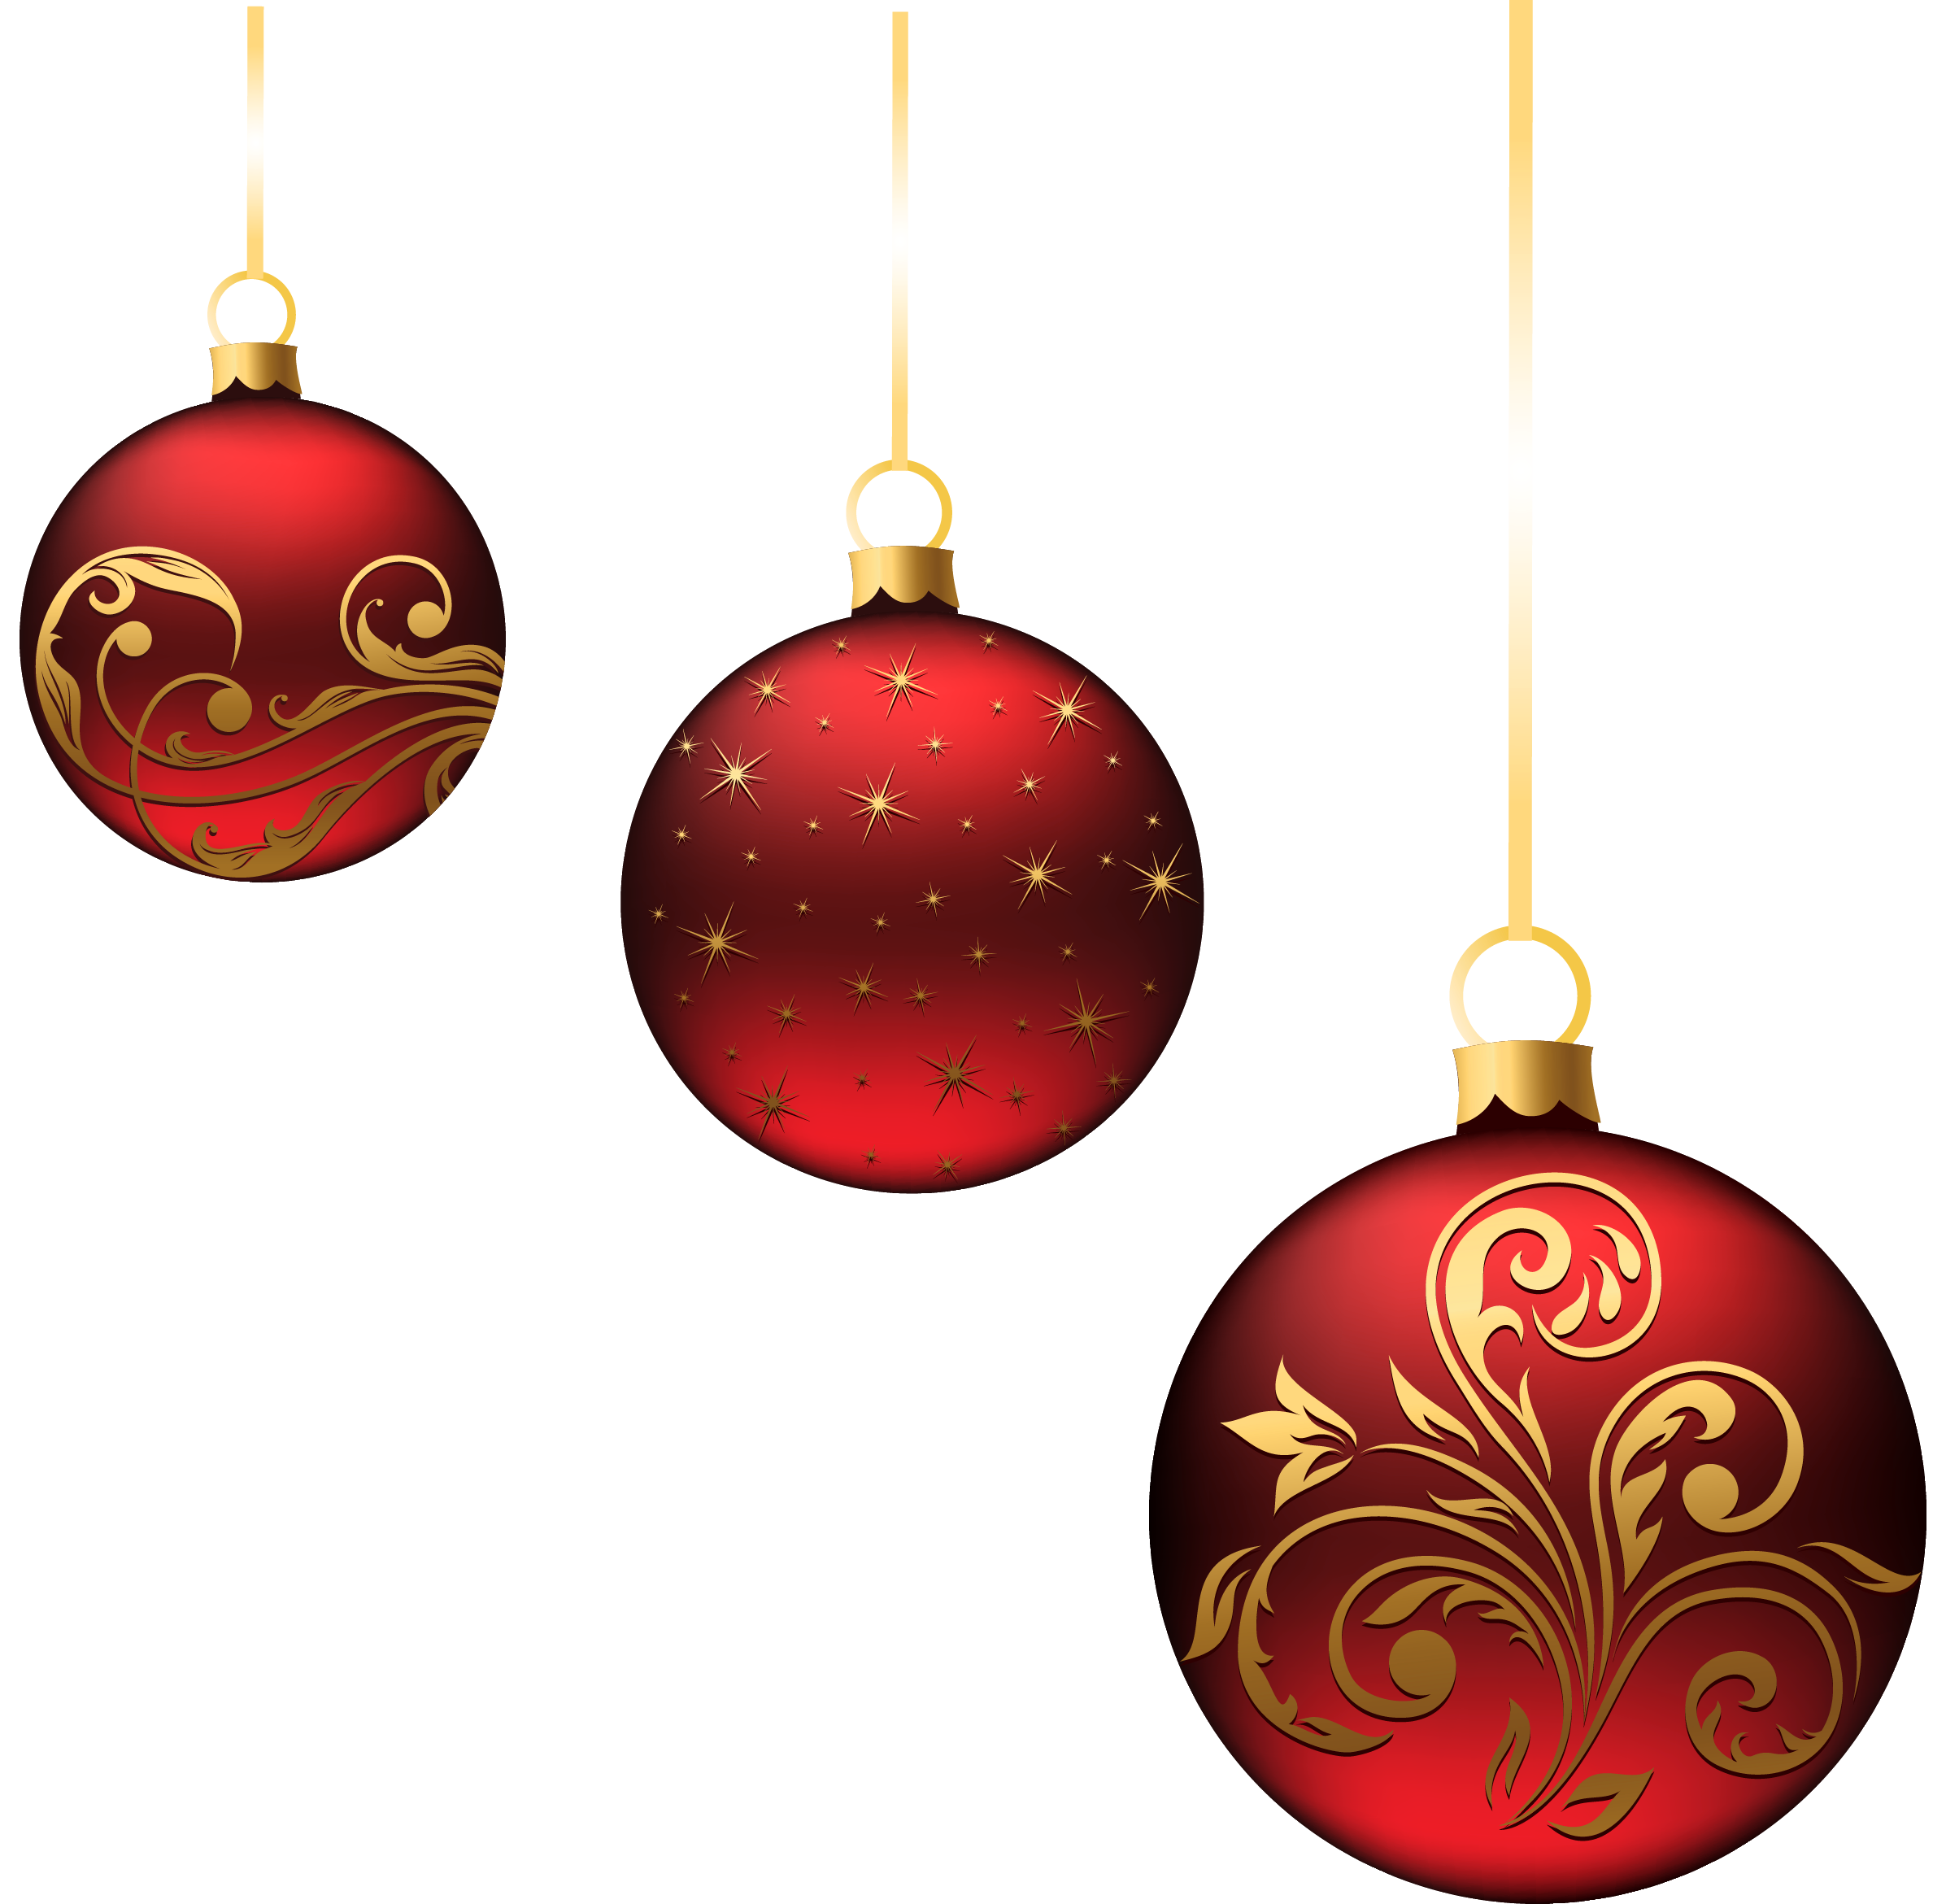 Christmas ball ornament png. Red balls ornaments picture